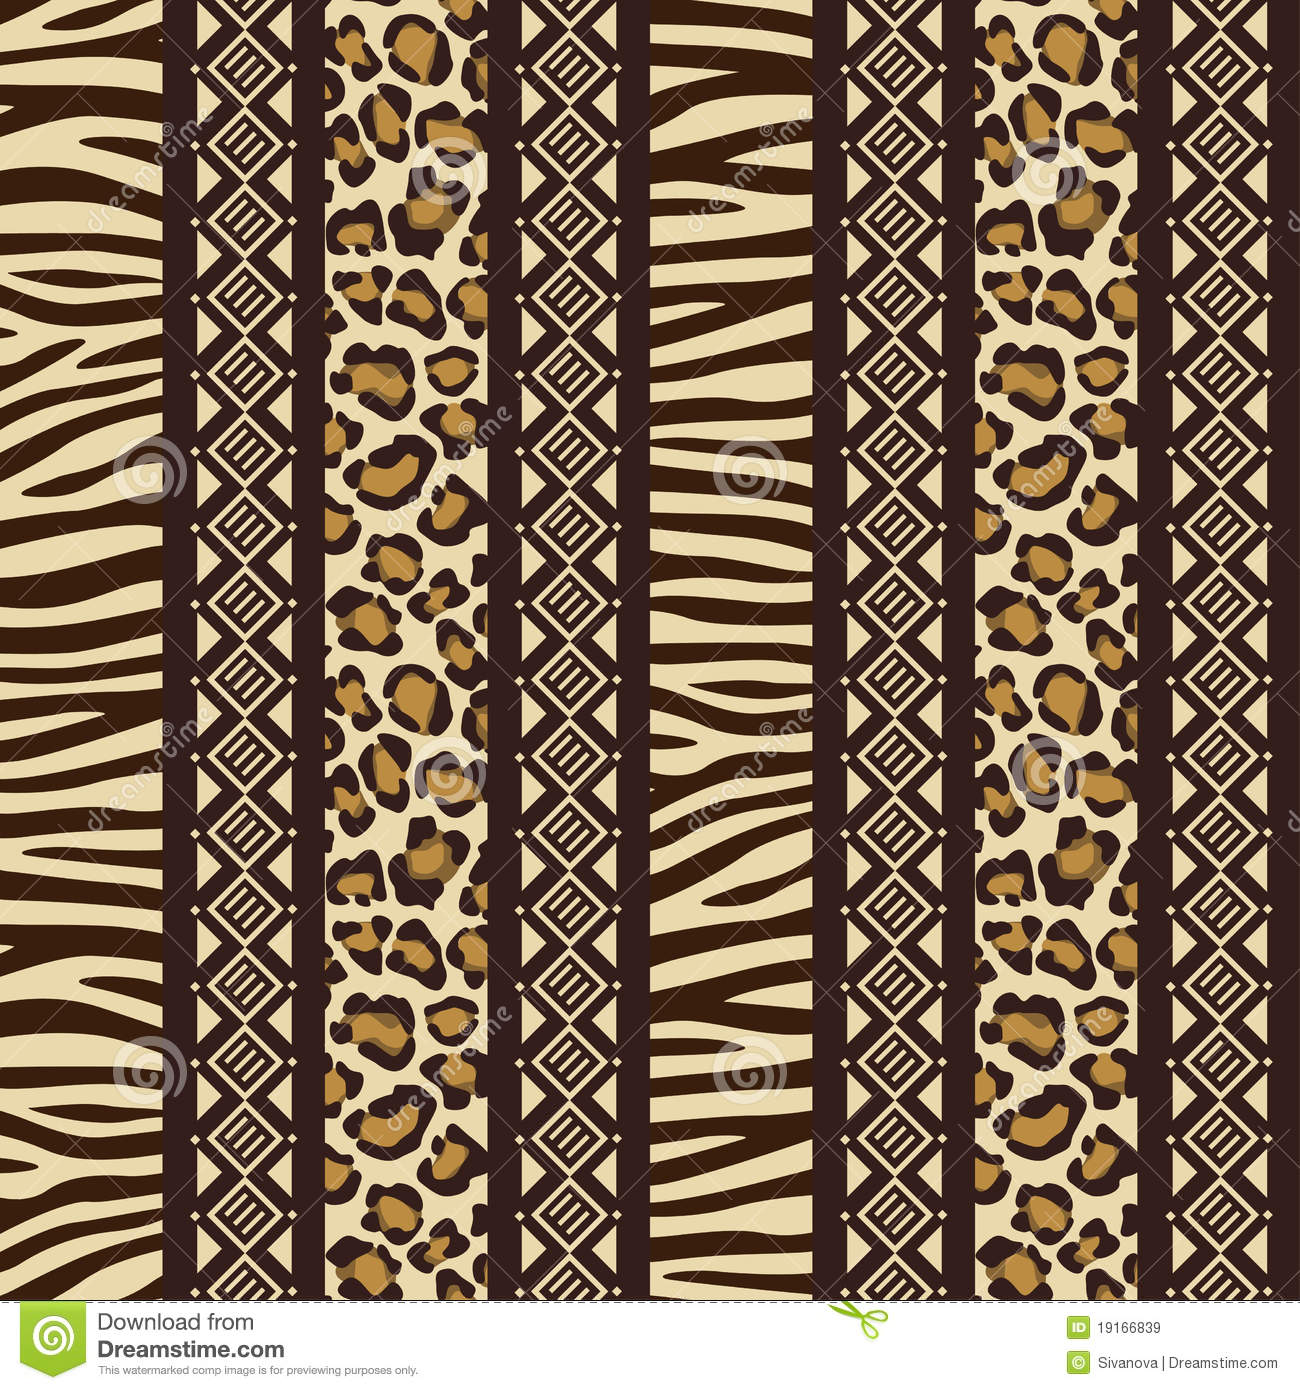 African Seamless With Wild Animal Skin Patte Royalty Free Stock Images ...